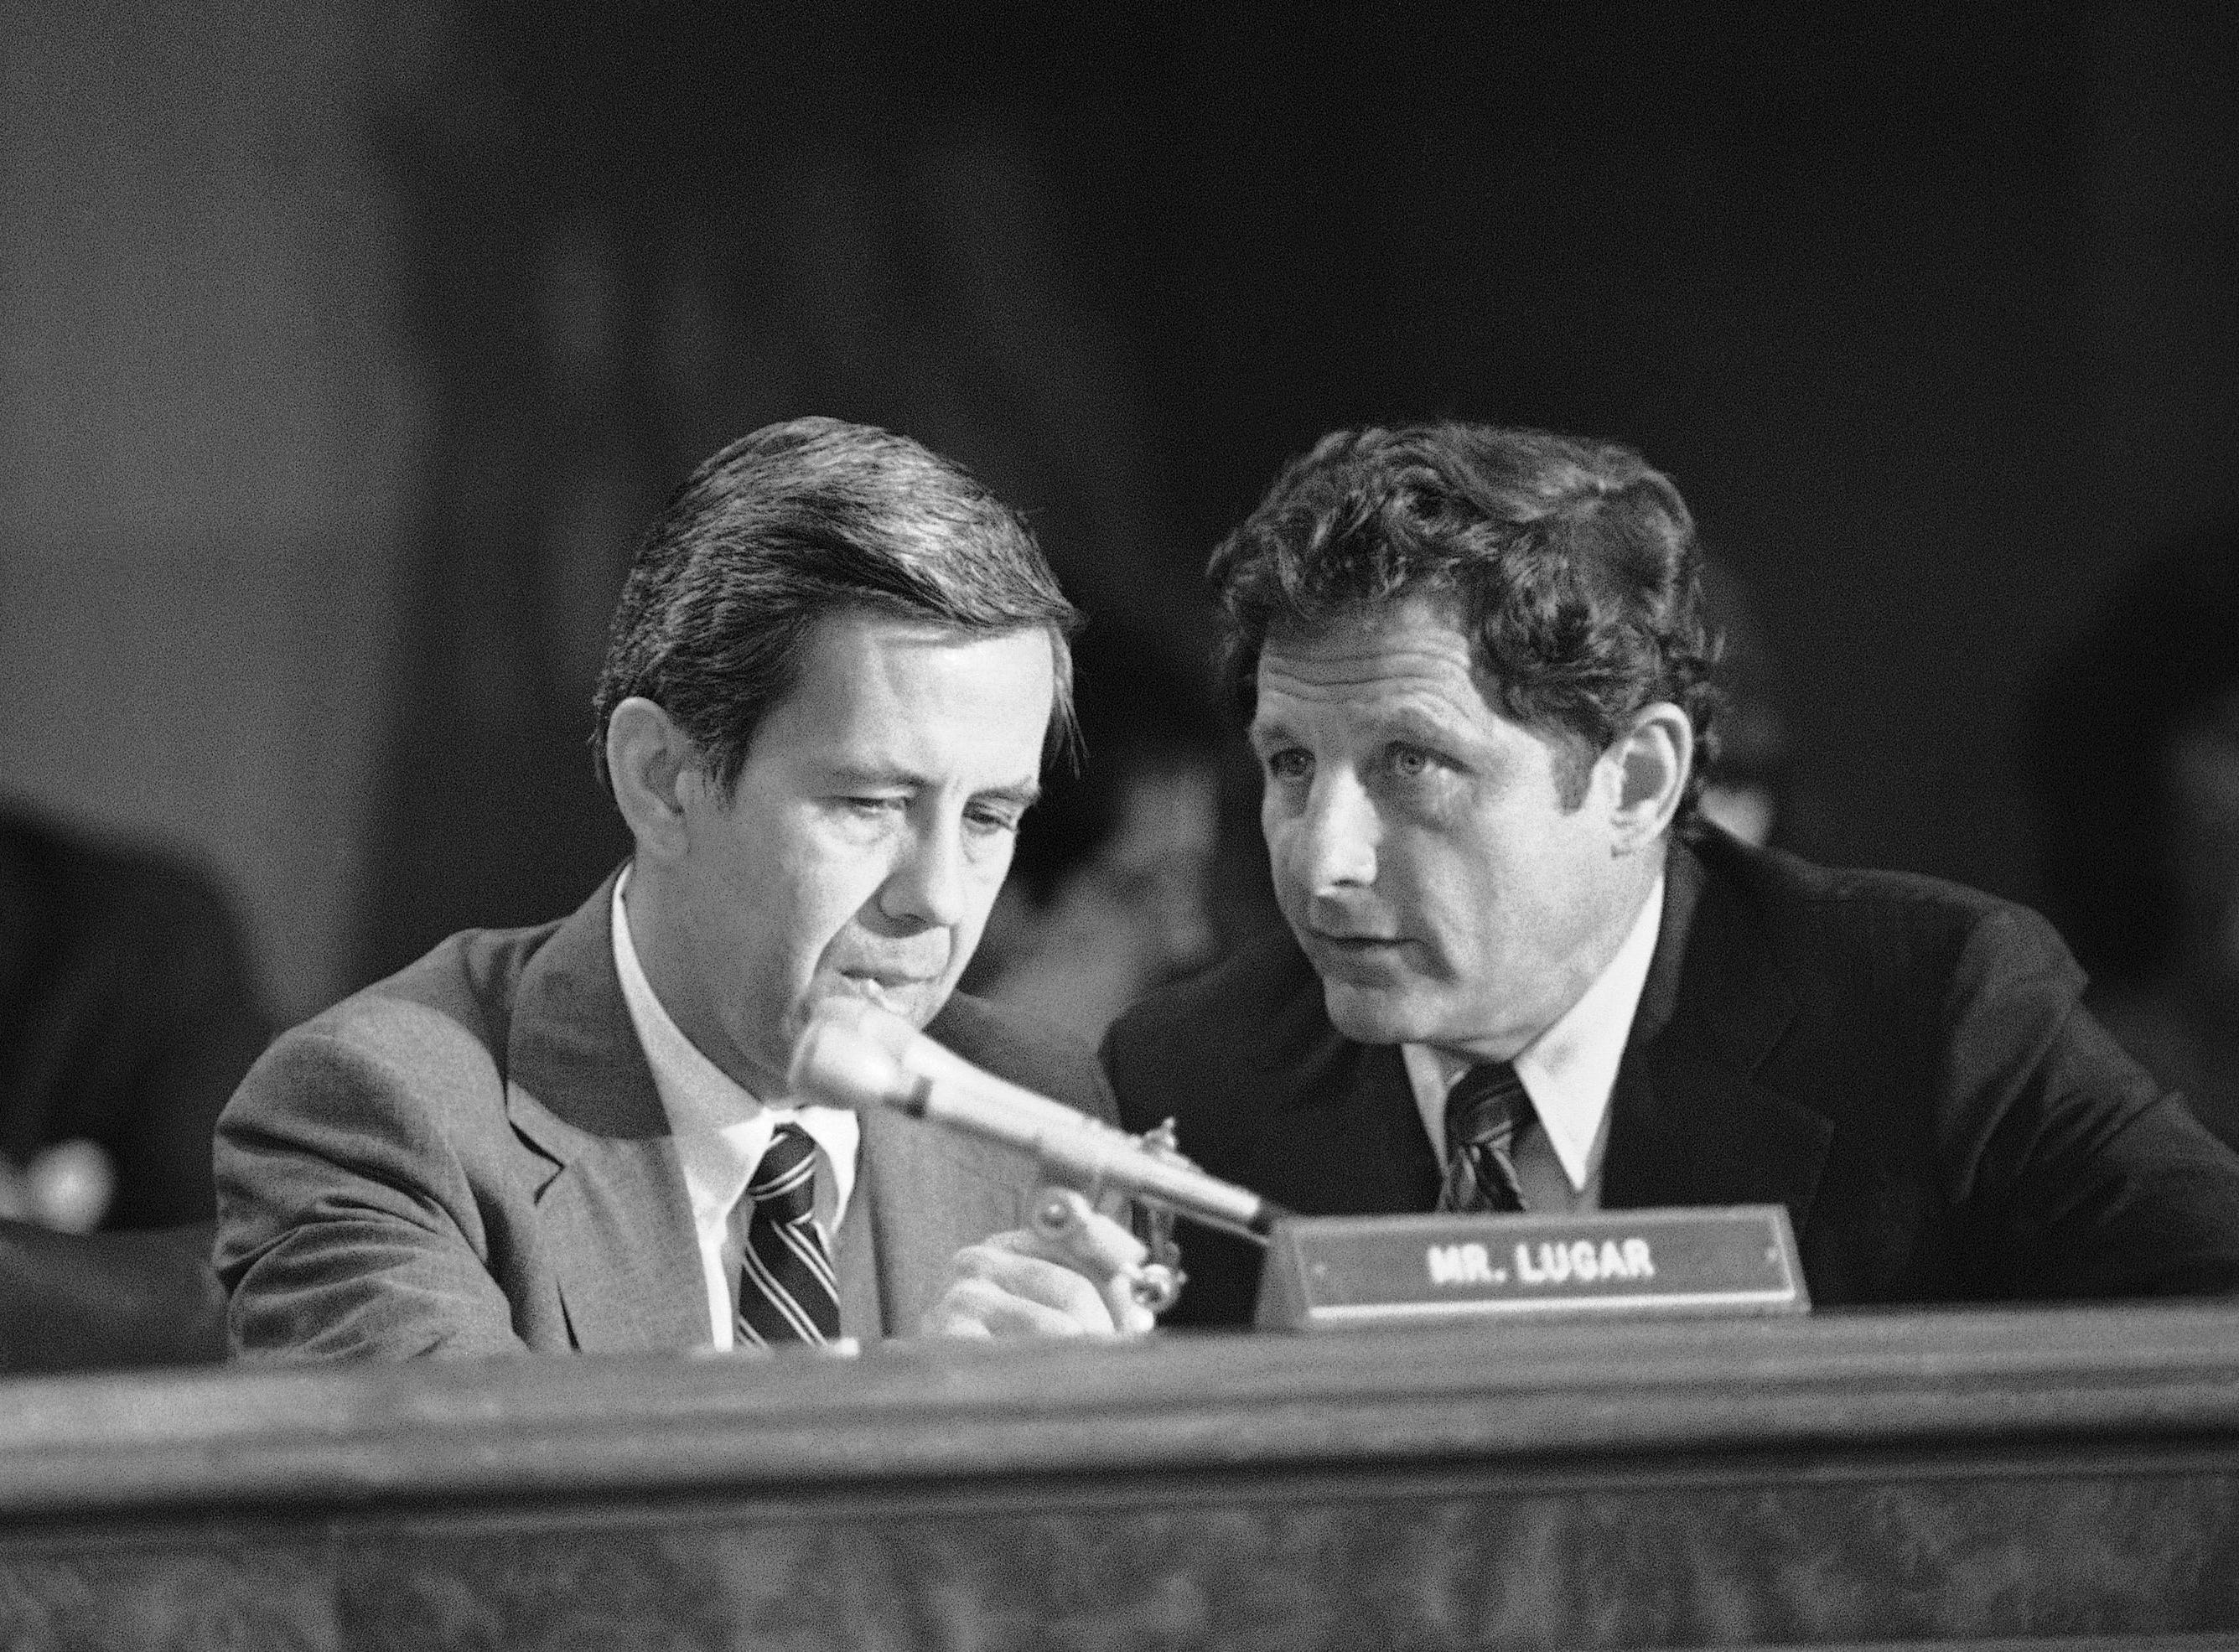 Sen. Richard Lugar, R-Ind., left, and Sen. Birch Bayh, D-Ind., chairman of the special Senate Judiciary subcommittee investigating individuals representing the interests of foreign governments, take a moment to plan strategy prior to the second day of hearings on Billy Carter?s relationship with the government of Libya on Capital Hill in Washington, Wednesday, August 21, 1980. (AP Photo/Harrity)